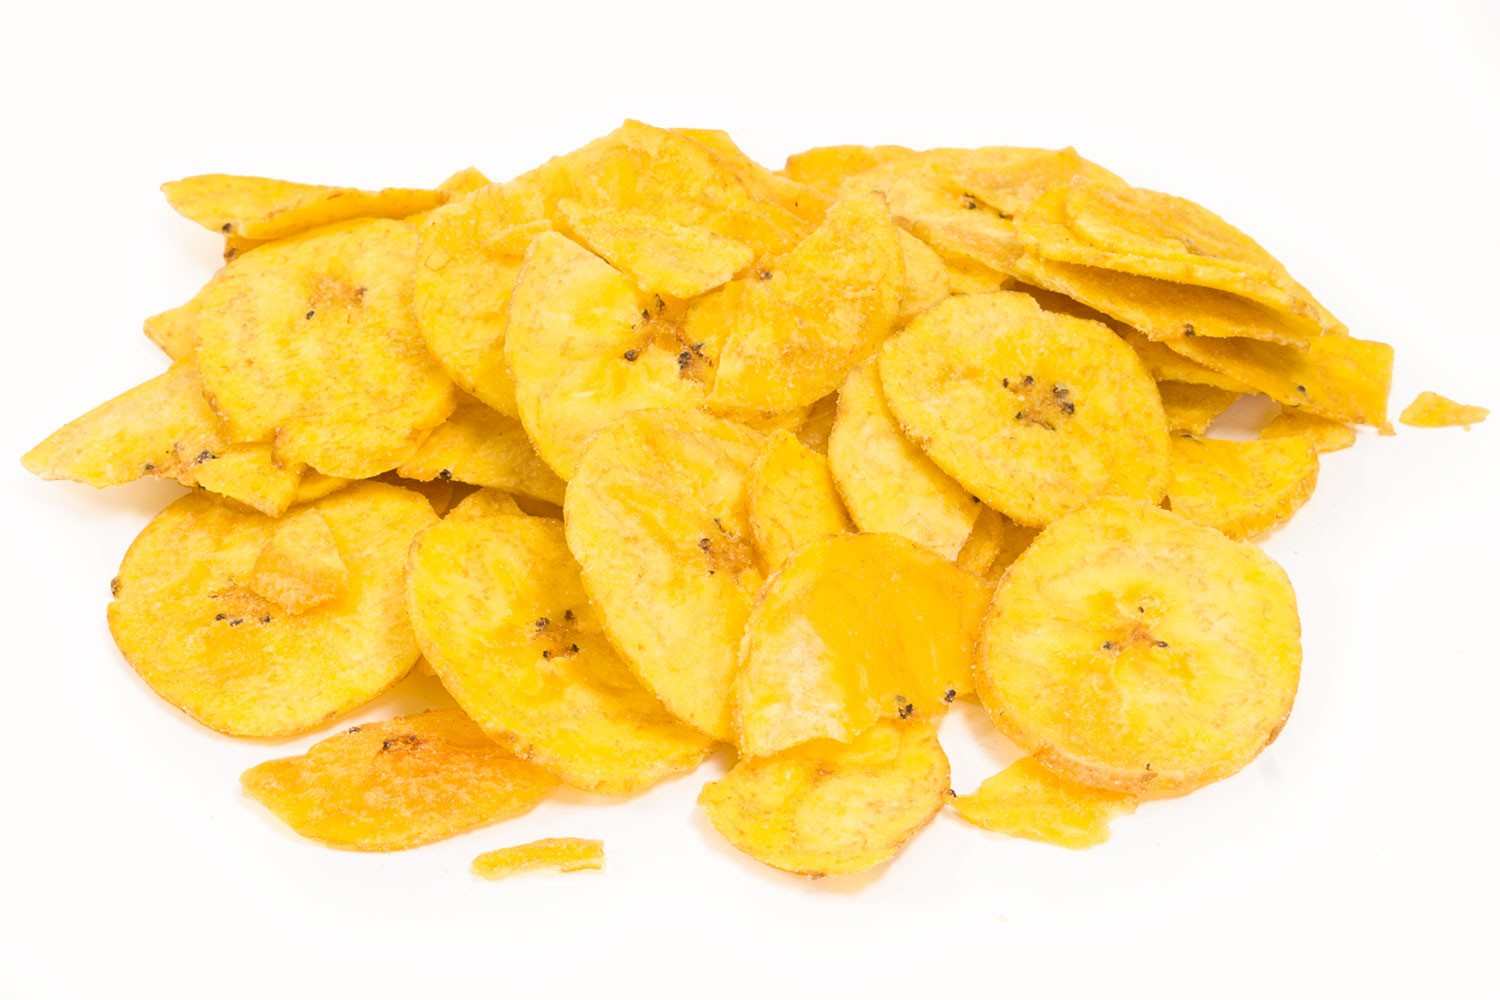 banana chips Bananas are a nutritious food rich in potassium and fiber, which are fried or dehydrated to make banana chips though banana chips supply essential vitamins and minerals, you're better off.